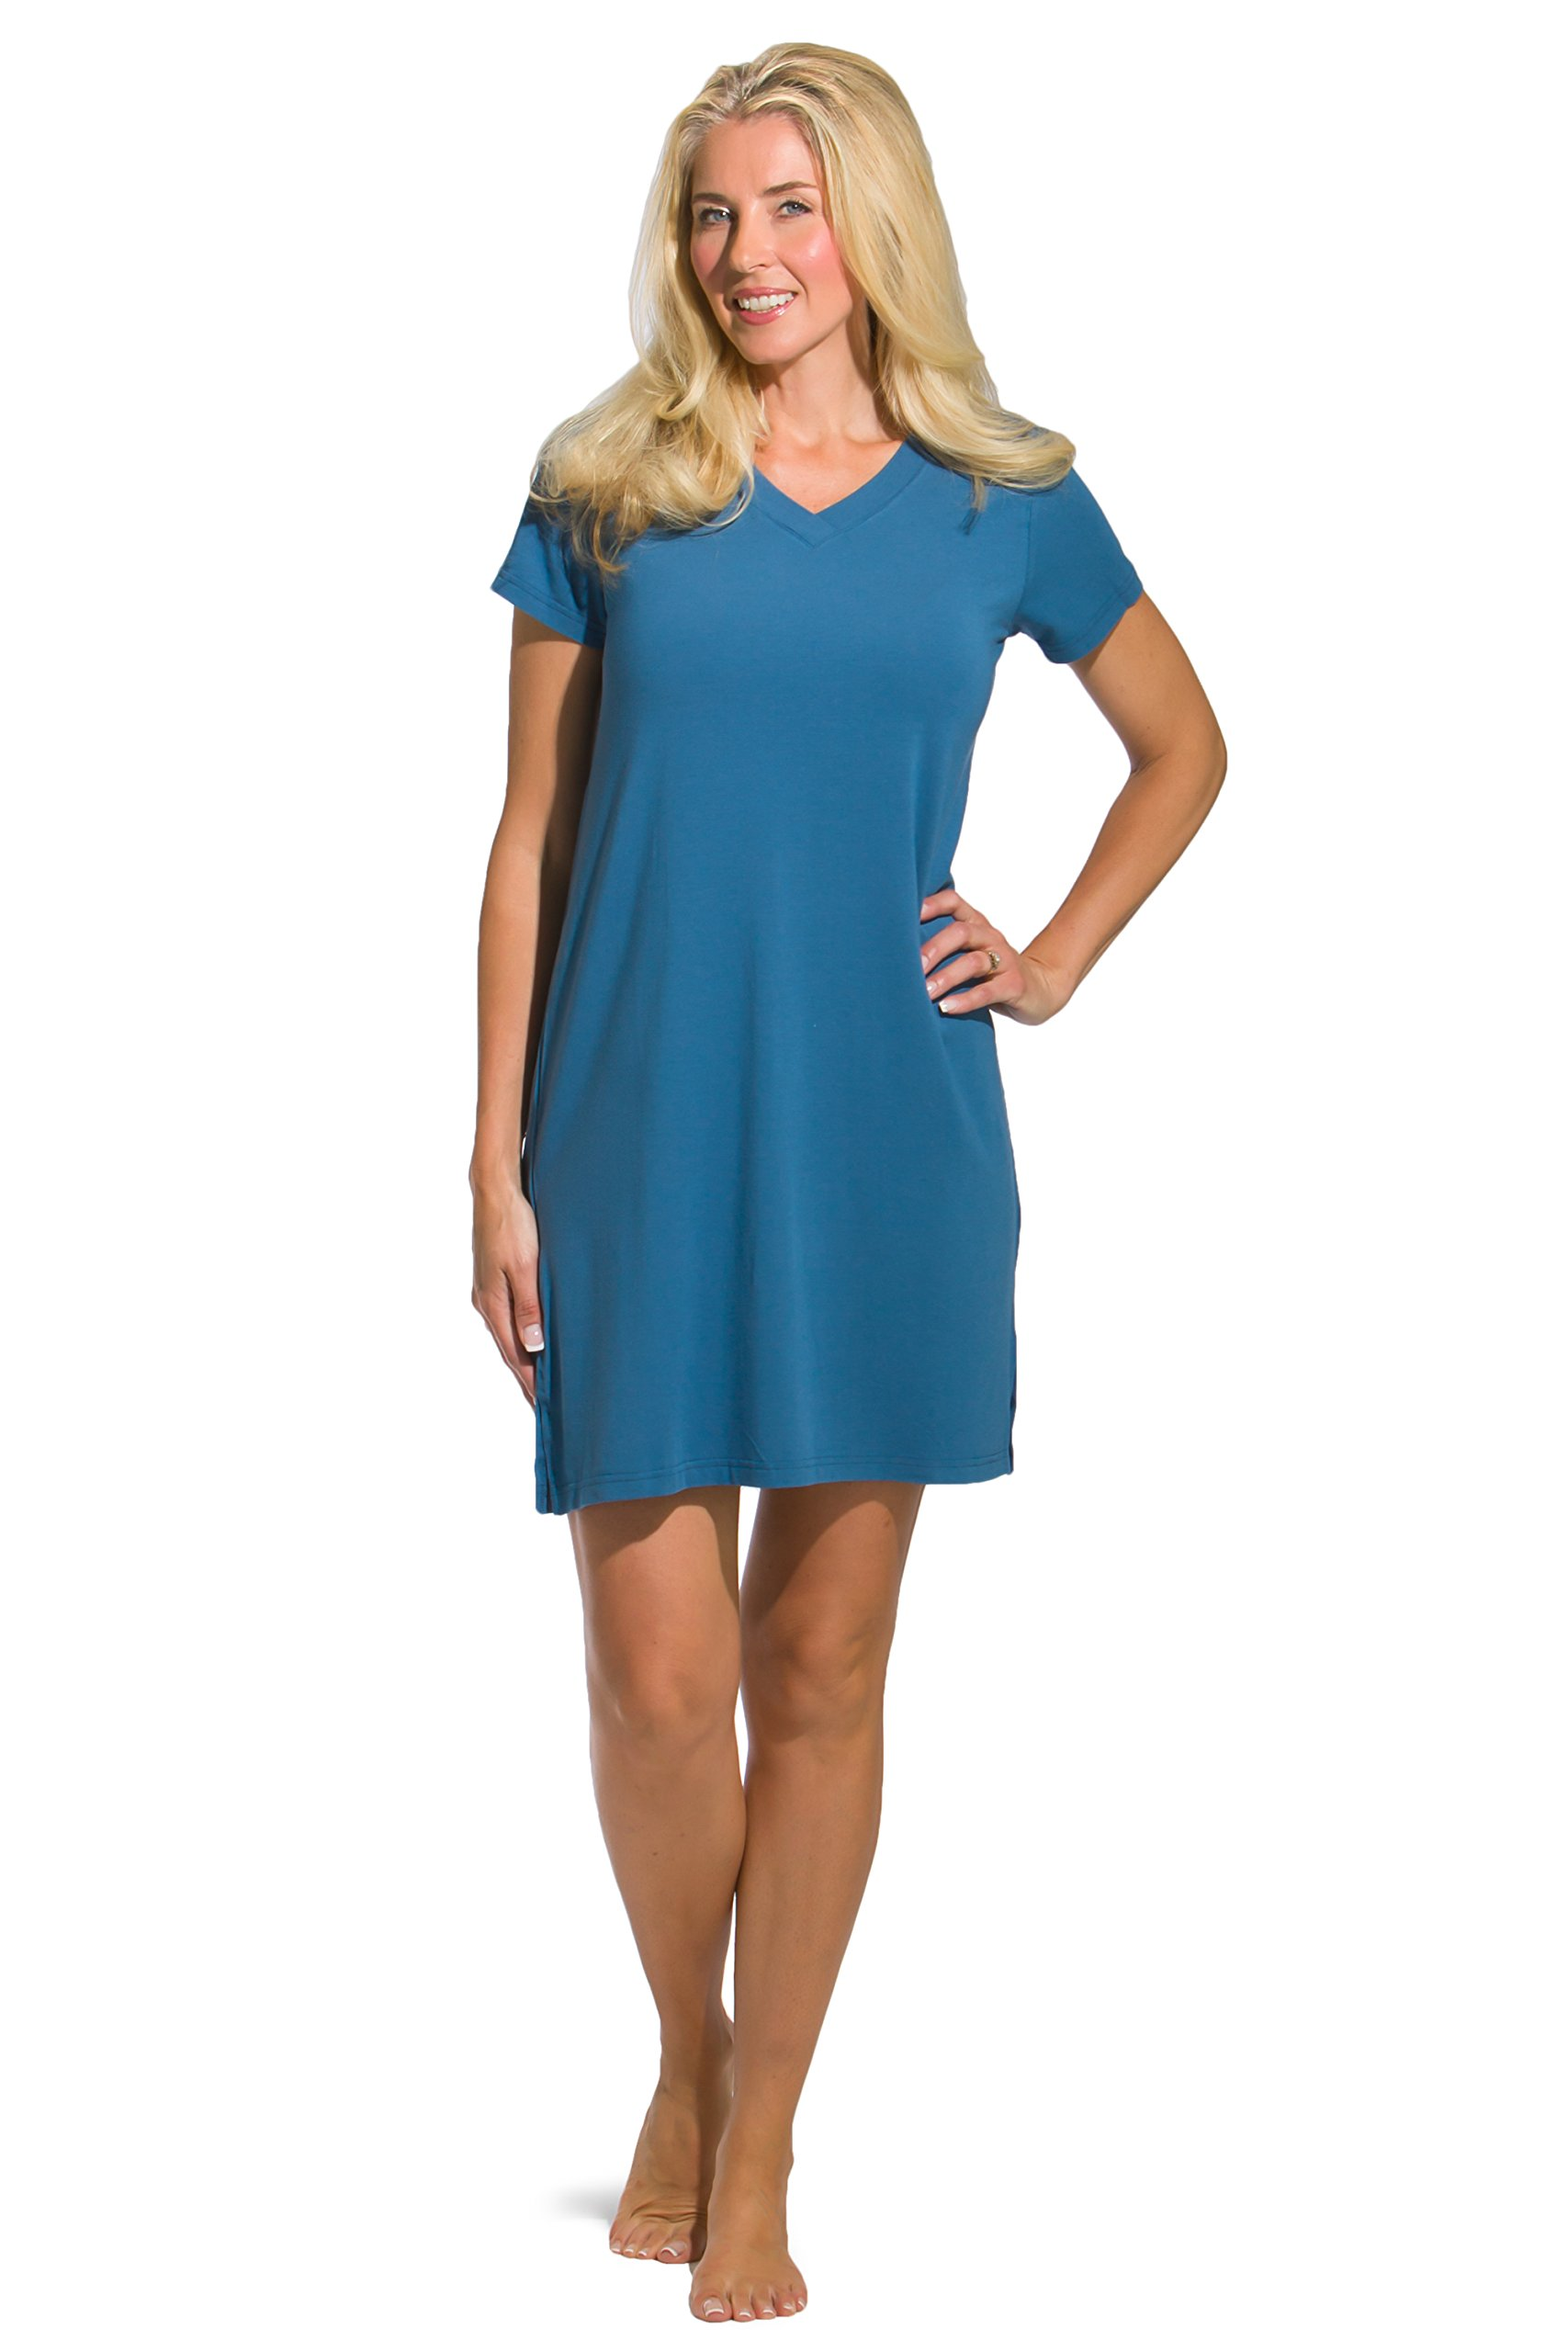 Fishers Finery Women's Tranquil Dreams V Neck Nightshirt Comfort Fit, Moonlight Blue, XX-Large